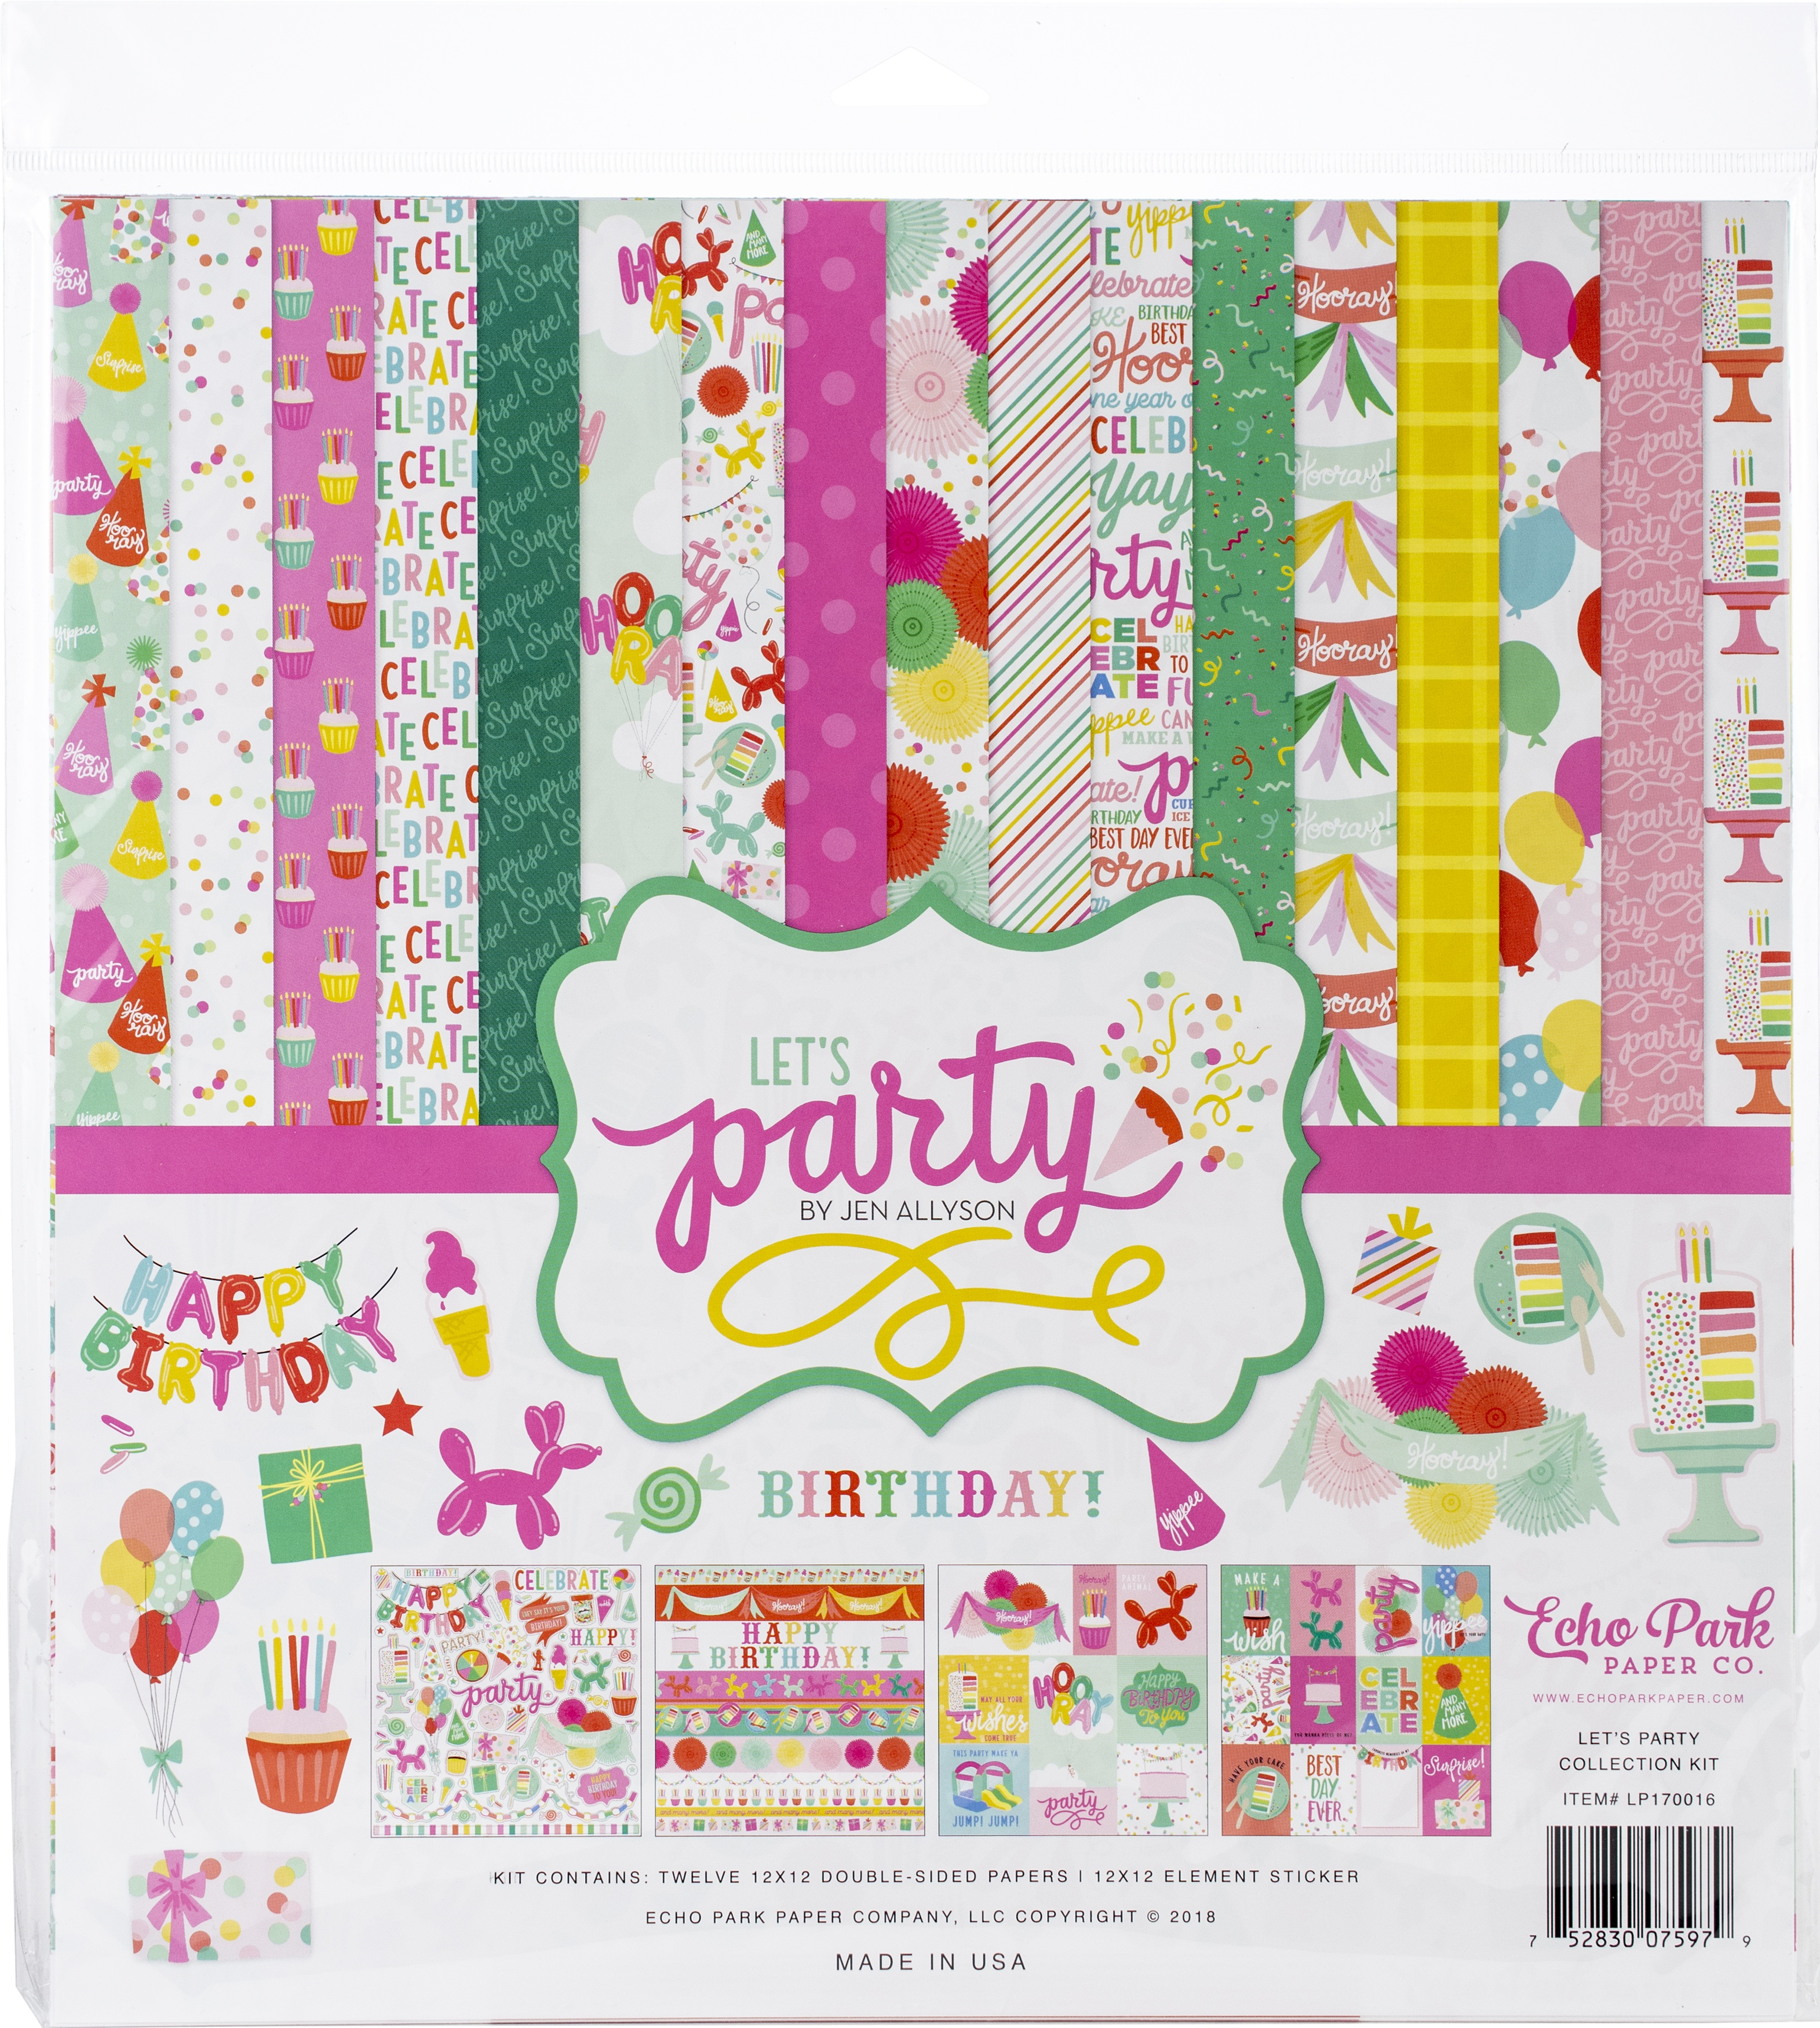 Let's Party - Echo Park Collection Kit 12X12